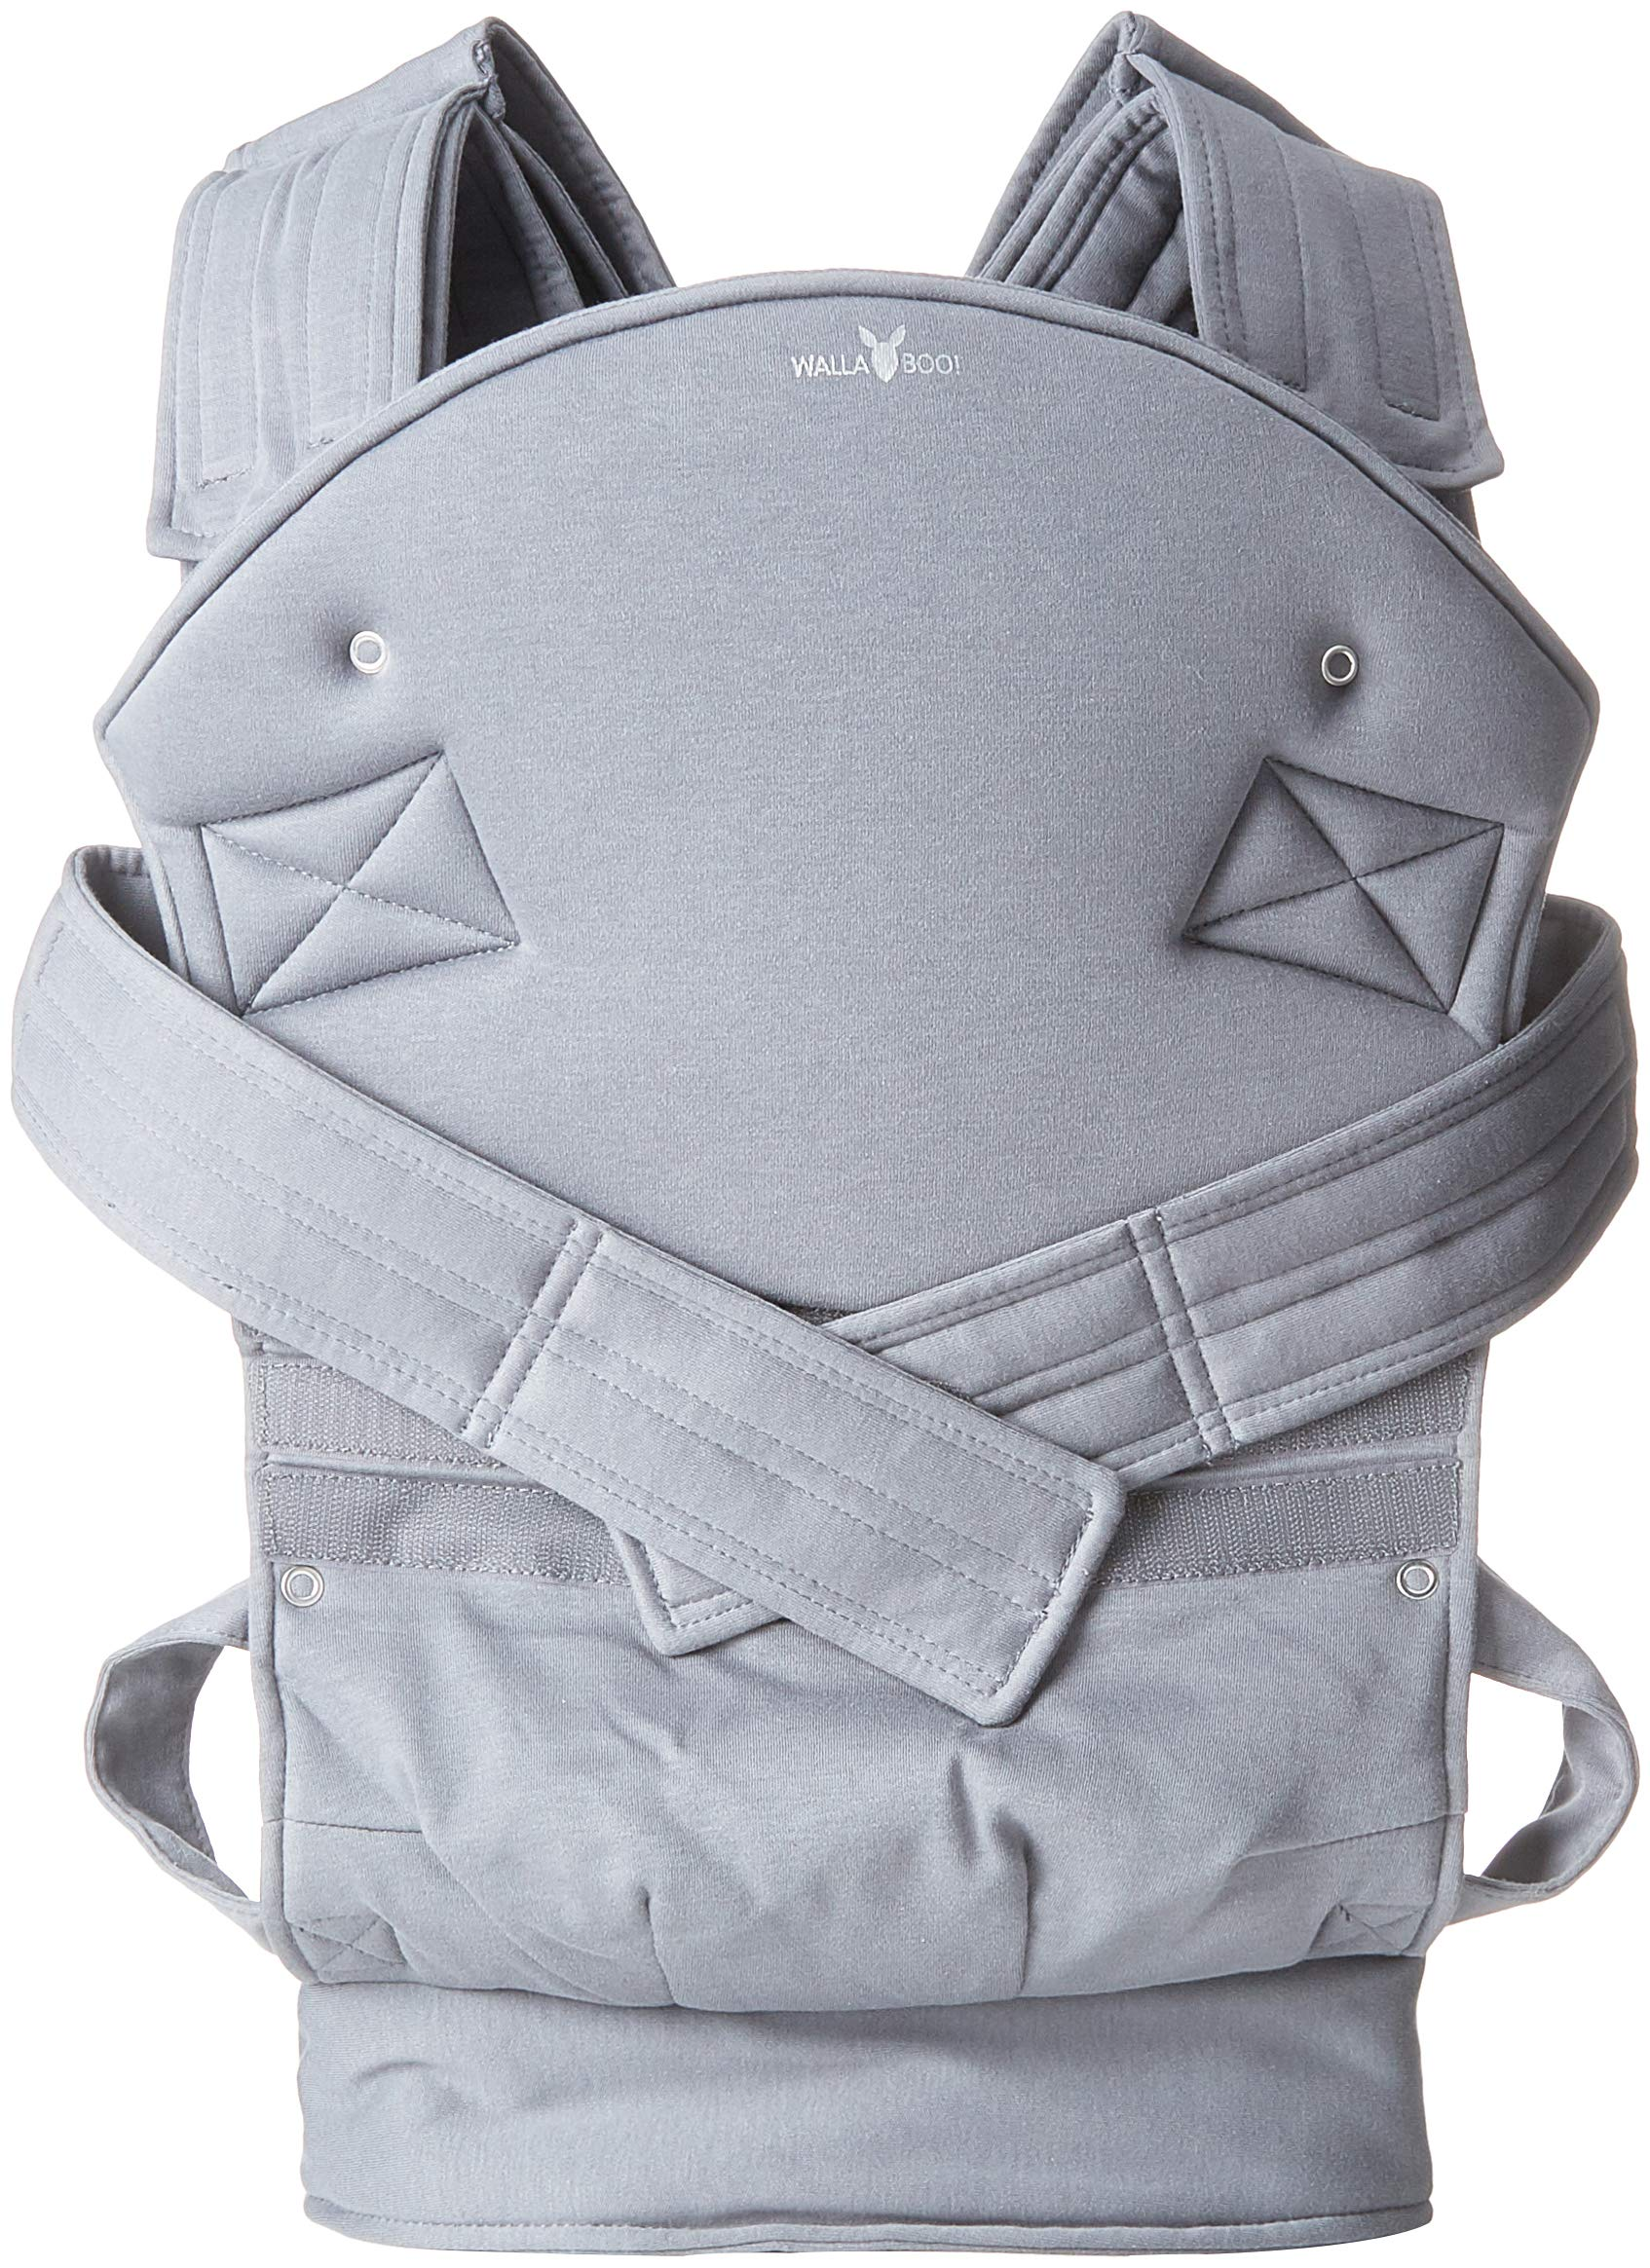 Wallaboo Baby carrier Ease, Hig Quality, Easy Adjustable and Ergonomic Front Carrier, 2 carrying poitions, Strong 100% cotton, Newborn 8lbs to 33lbs, Colour: Grey Wallaboo Ergonomic carrying with wide leg position (m-position) Sturdy waist belt and padded shoulder straps. Age suitability: babies from 3,5kg / 8 lbs to 15kg / 33 lbs. Walla boo baby carrier is made with 100% breathable cotton, makes baby feel comfortable and cozy 1